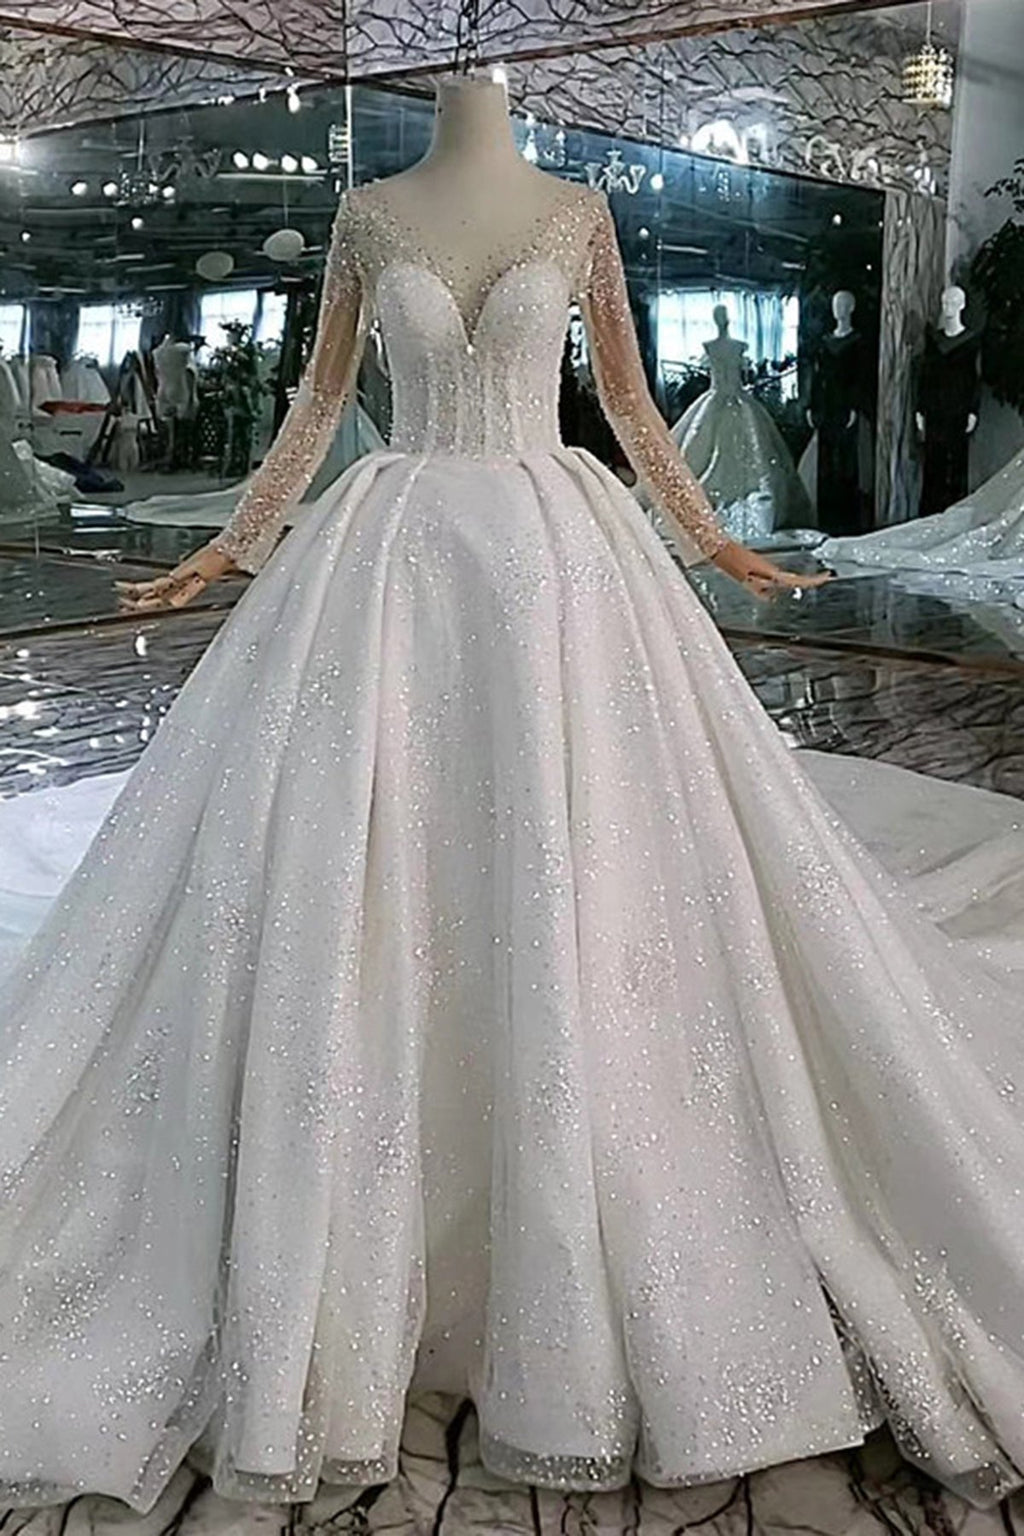 Handmade Crystal Luxury Cathedral Train Pure White Wedding Dress Wedding Dress 2 White (100cm Cathedral Train)